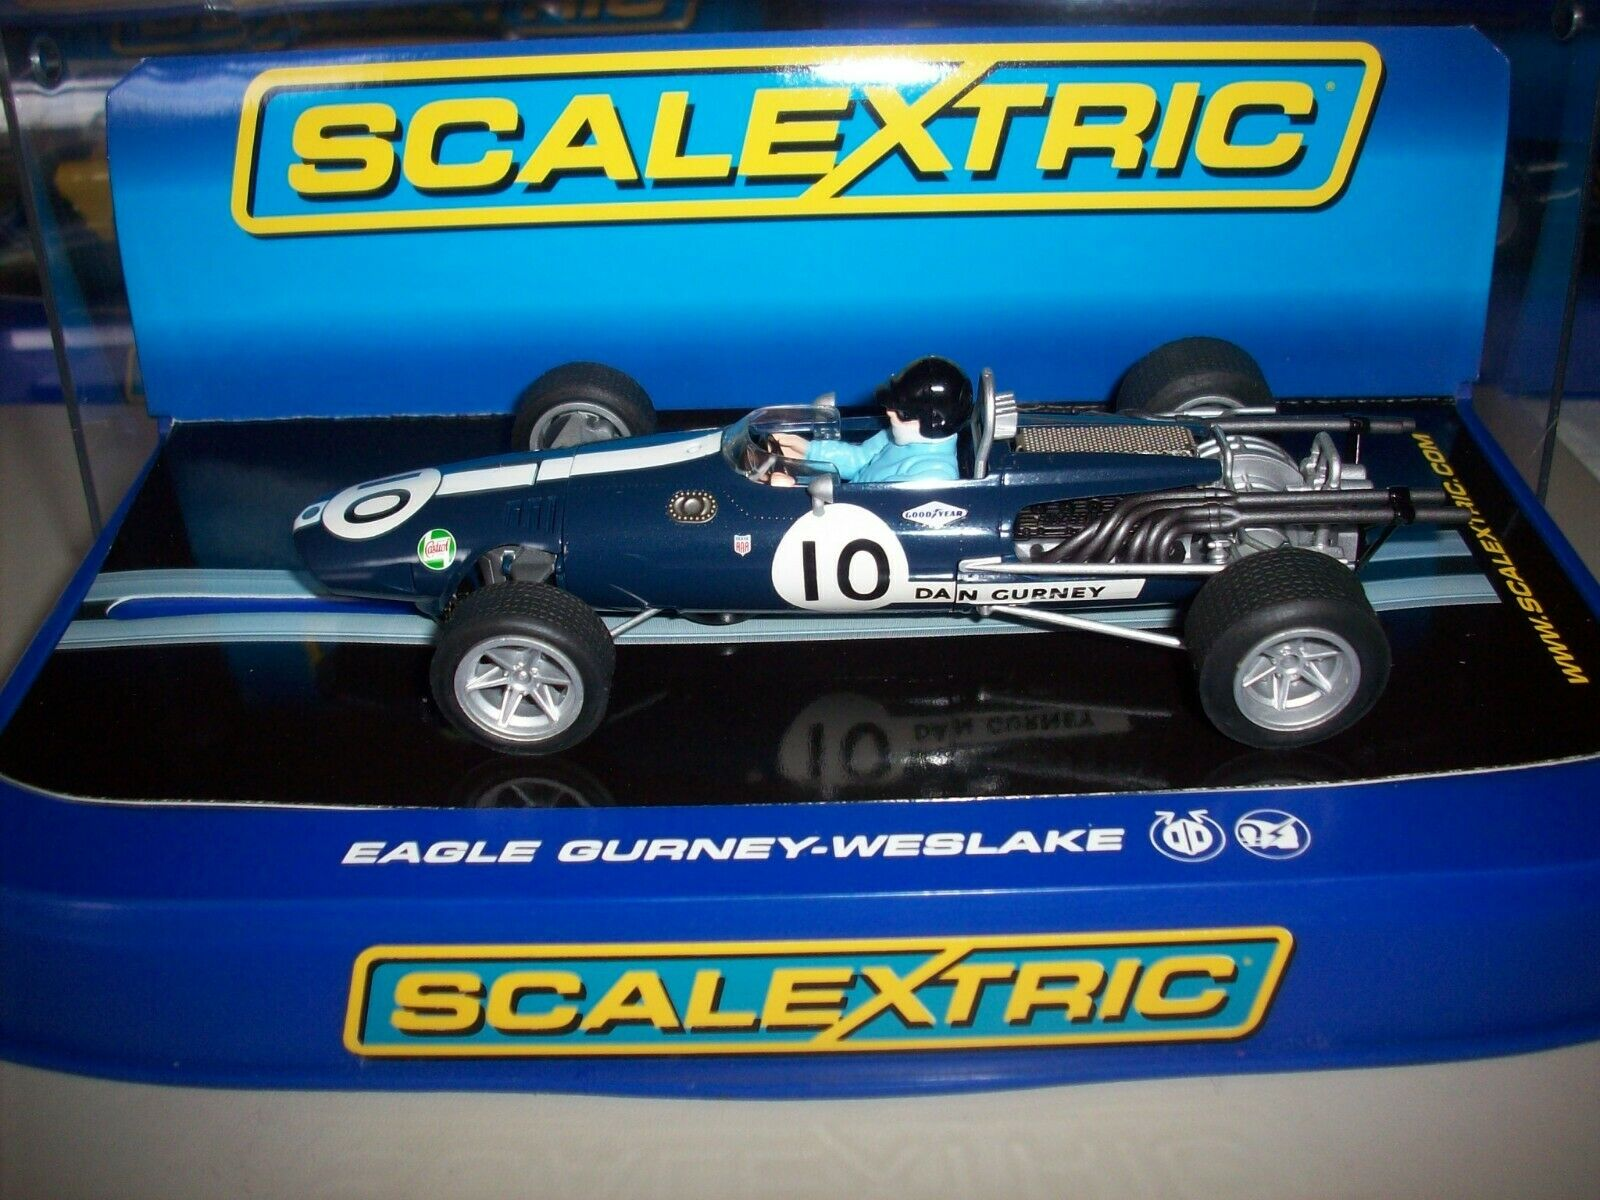 Scalextric C3102 Eagly Gurney-Weslake Dan Gurney New Mint In Box